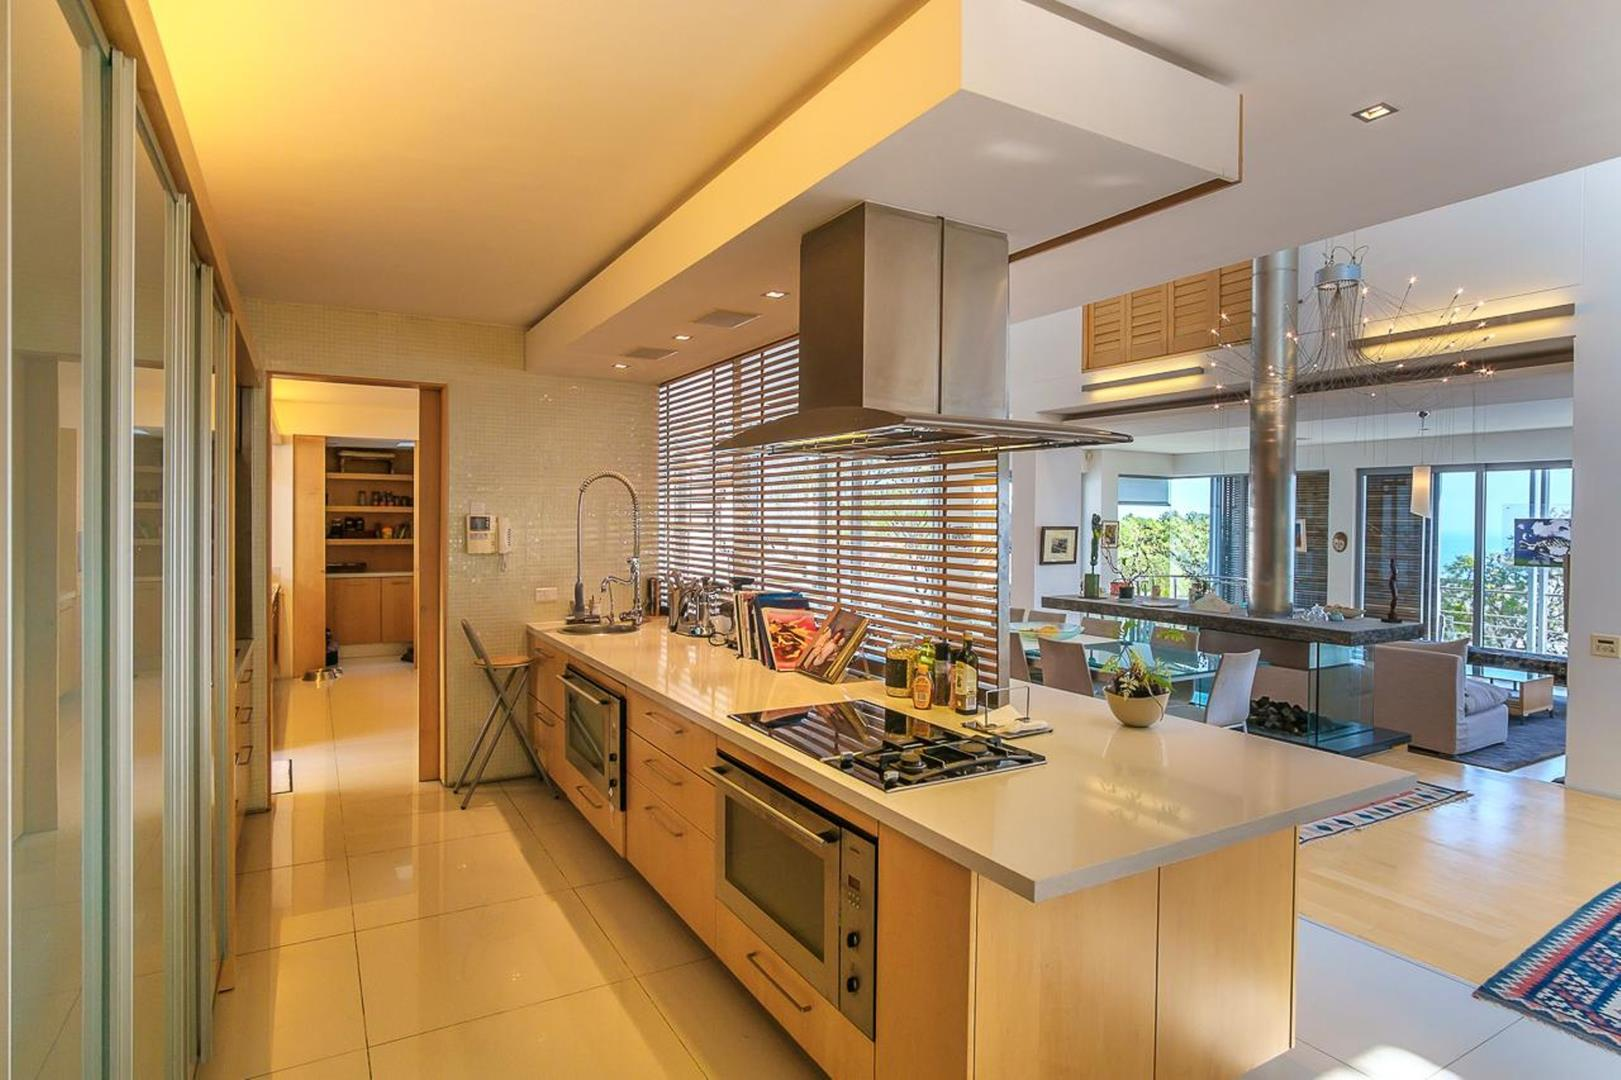 Sea side property in Cape Town, South Africa | Kitchen |Jawitz Properties | Finest Residences